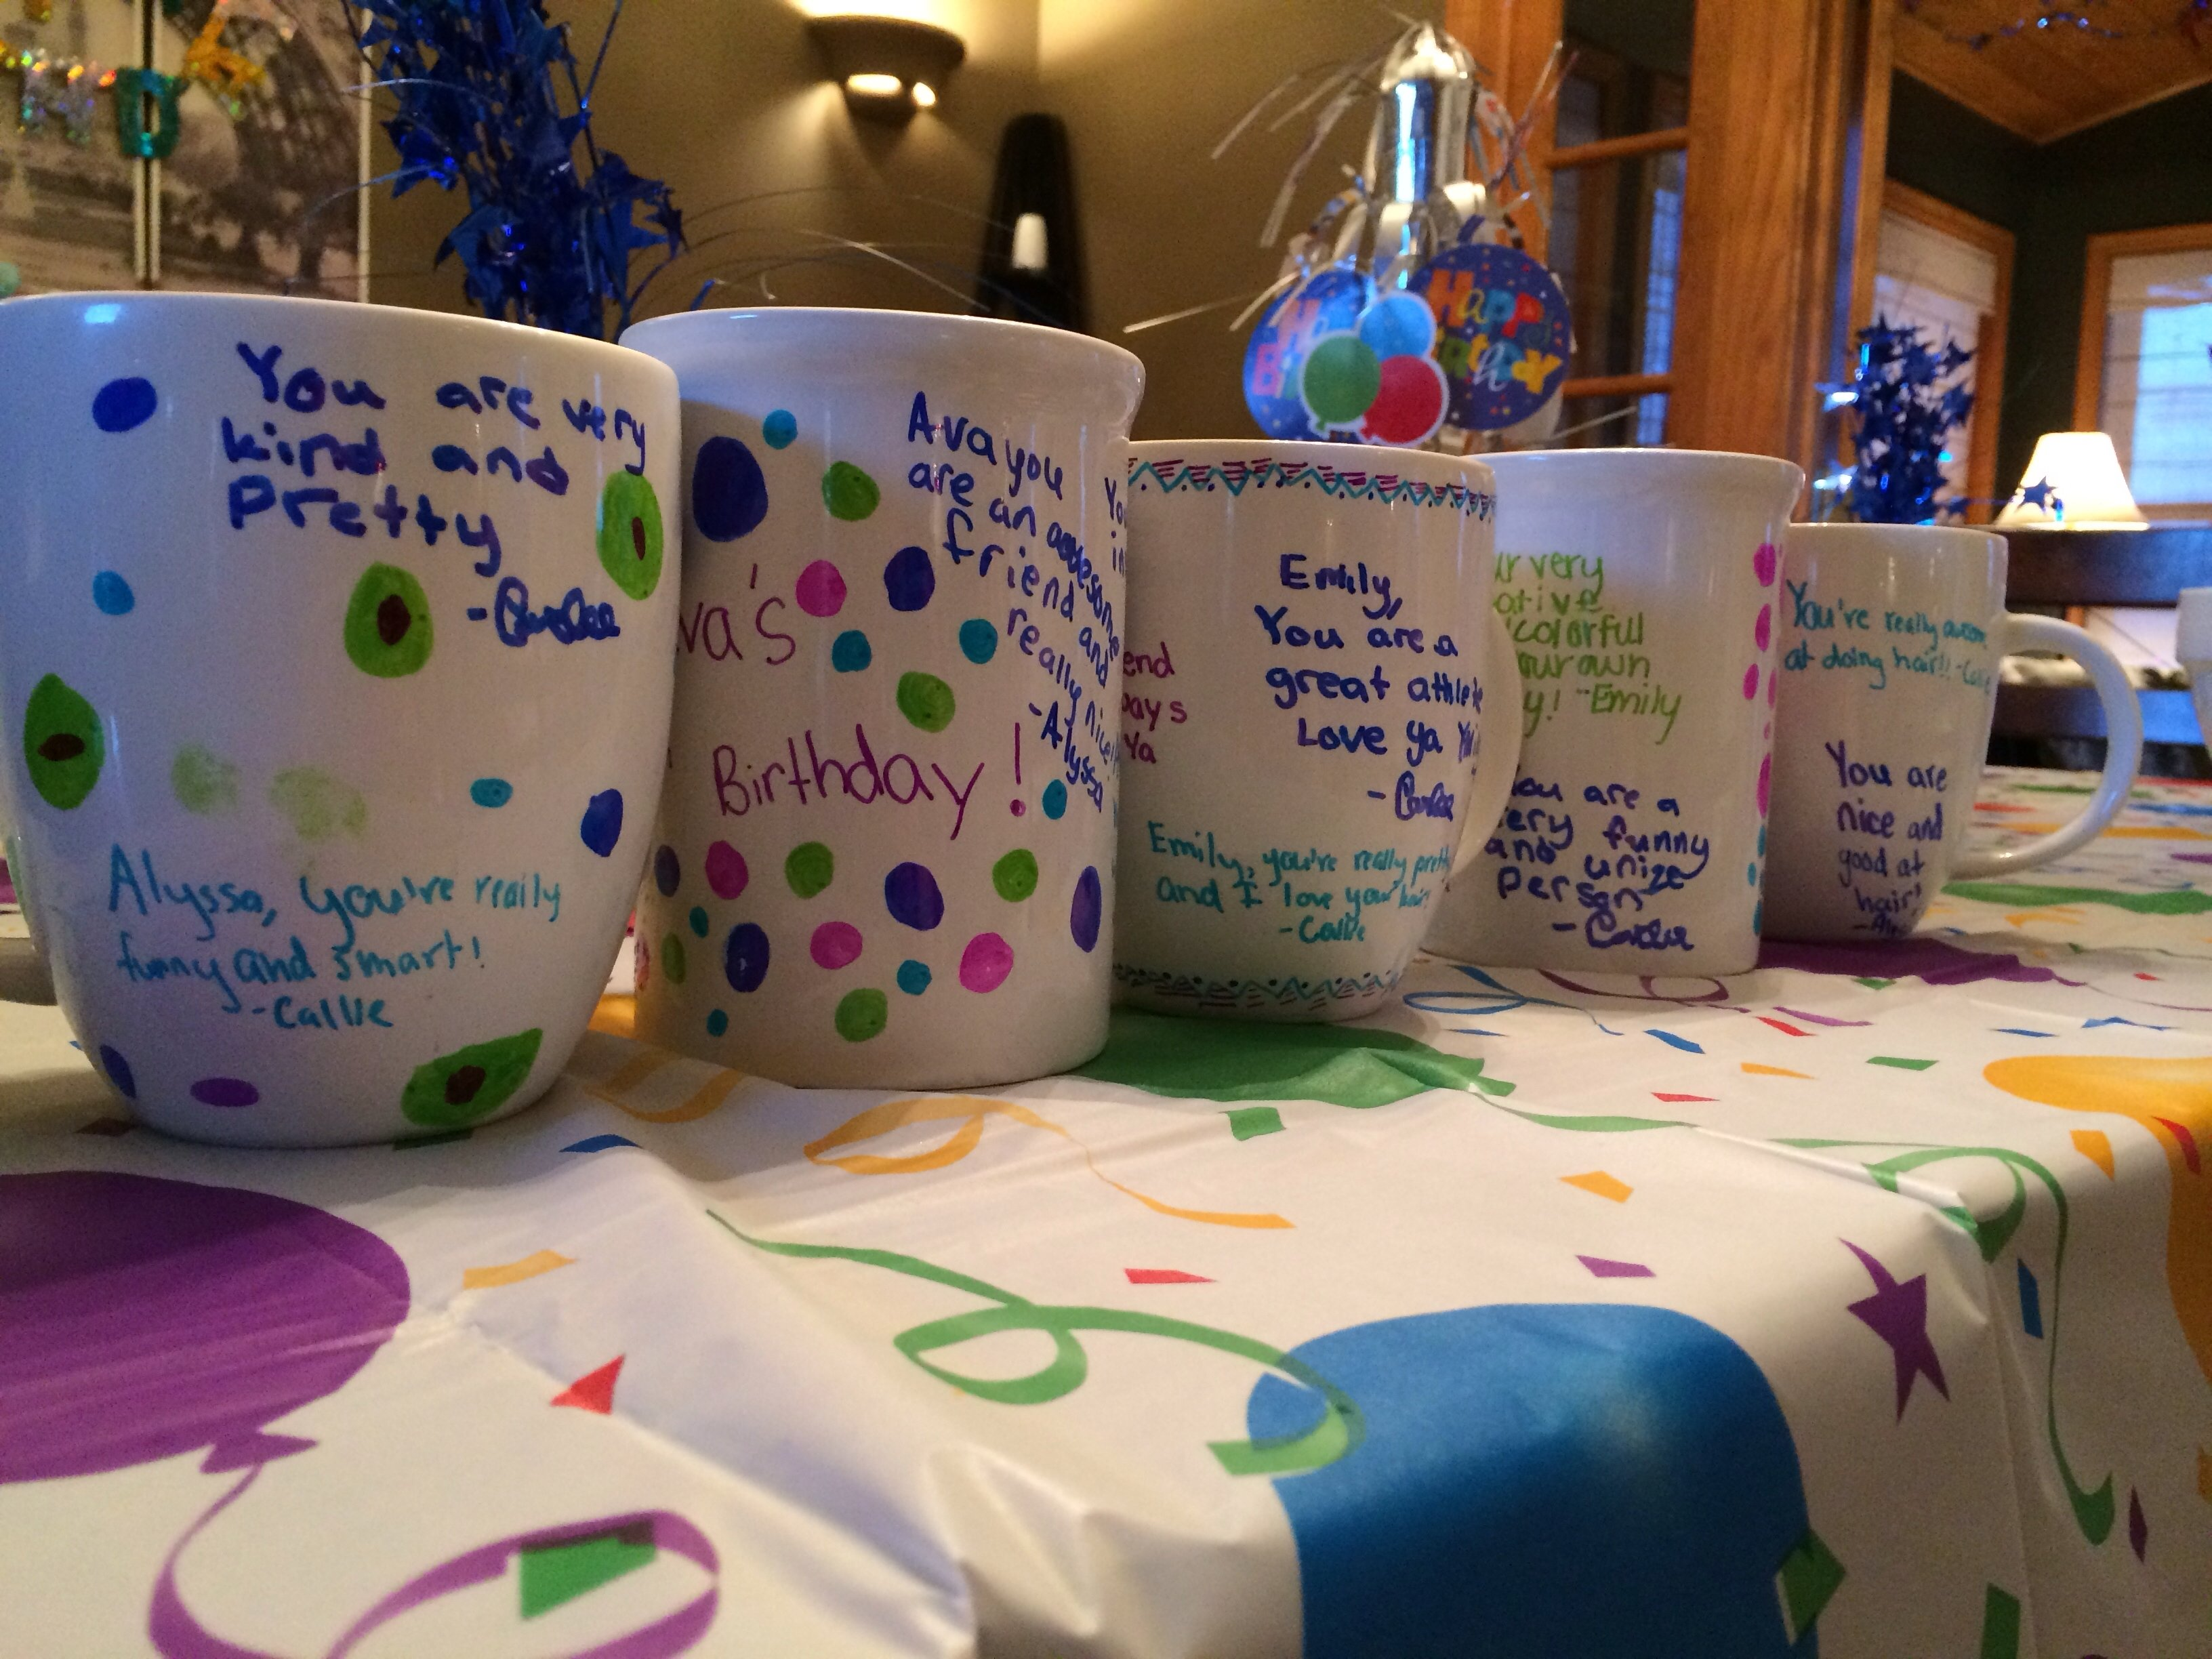 10 amazing birthday ideas for 12 year old